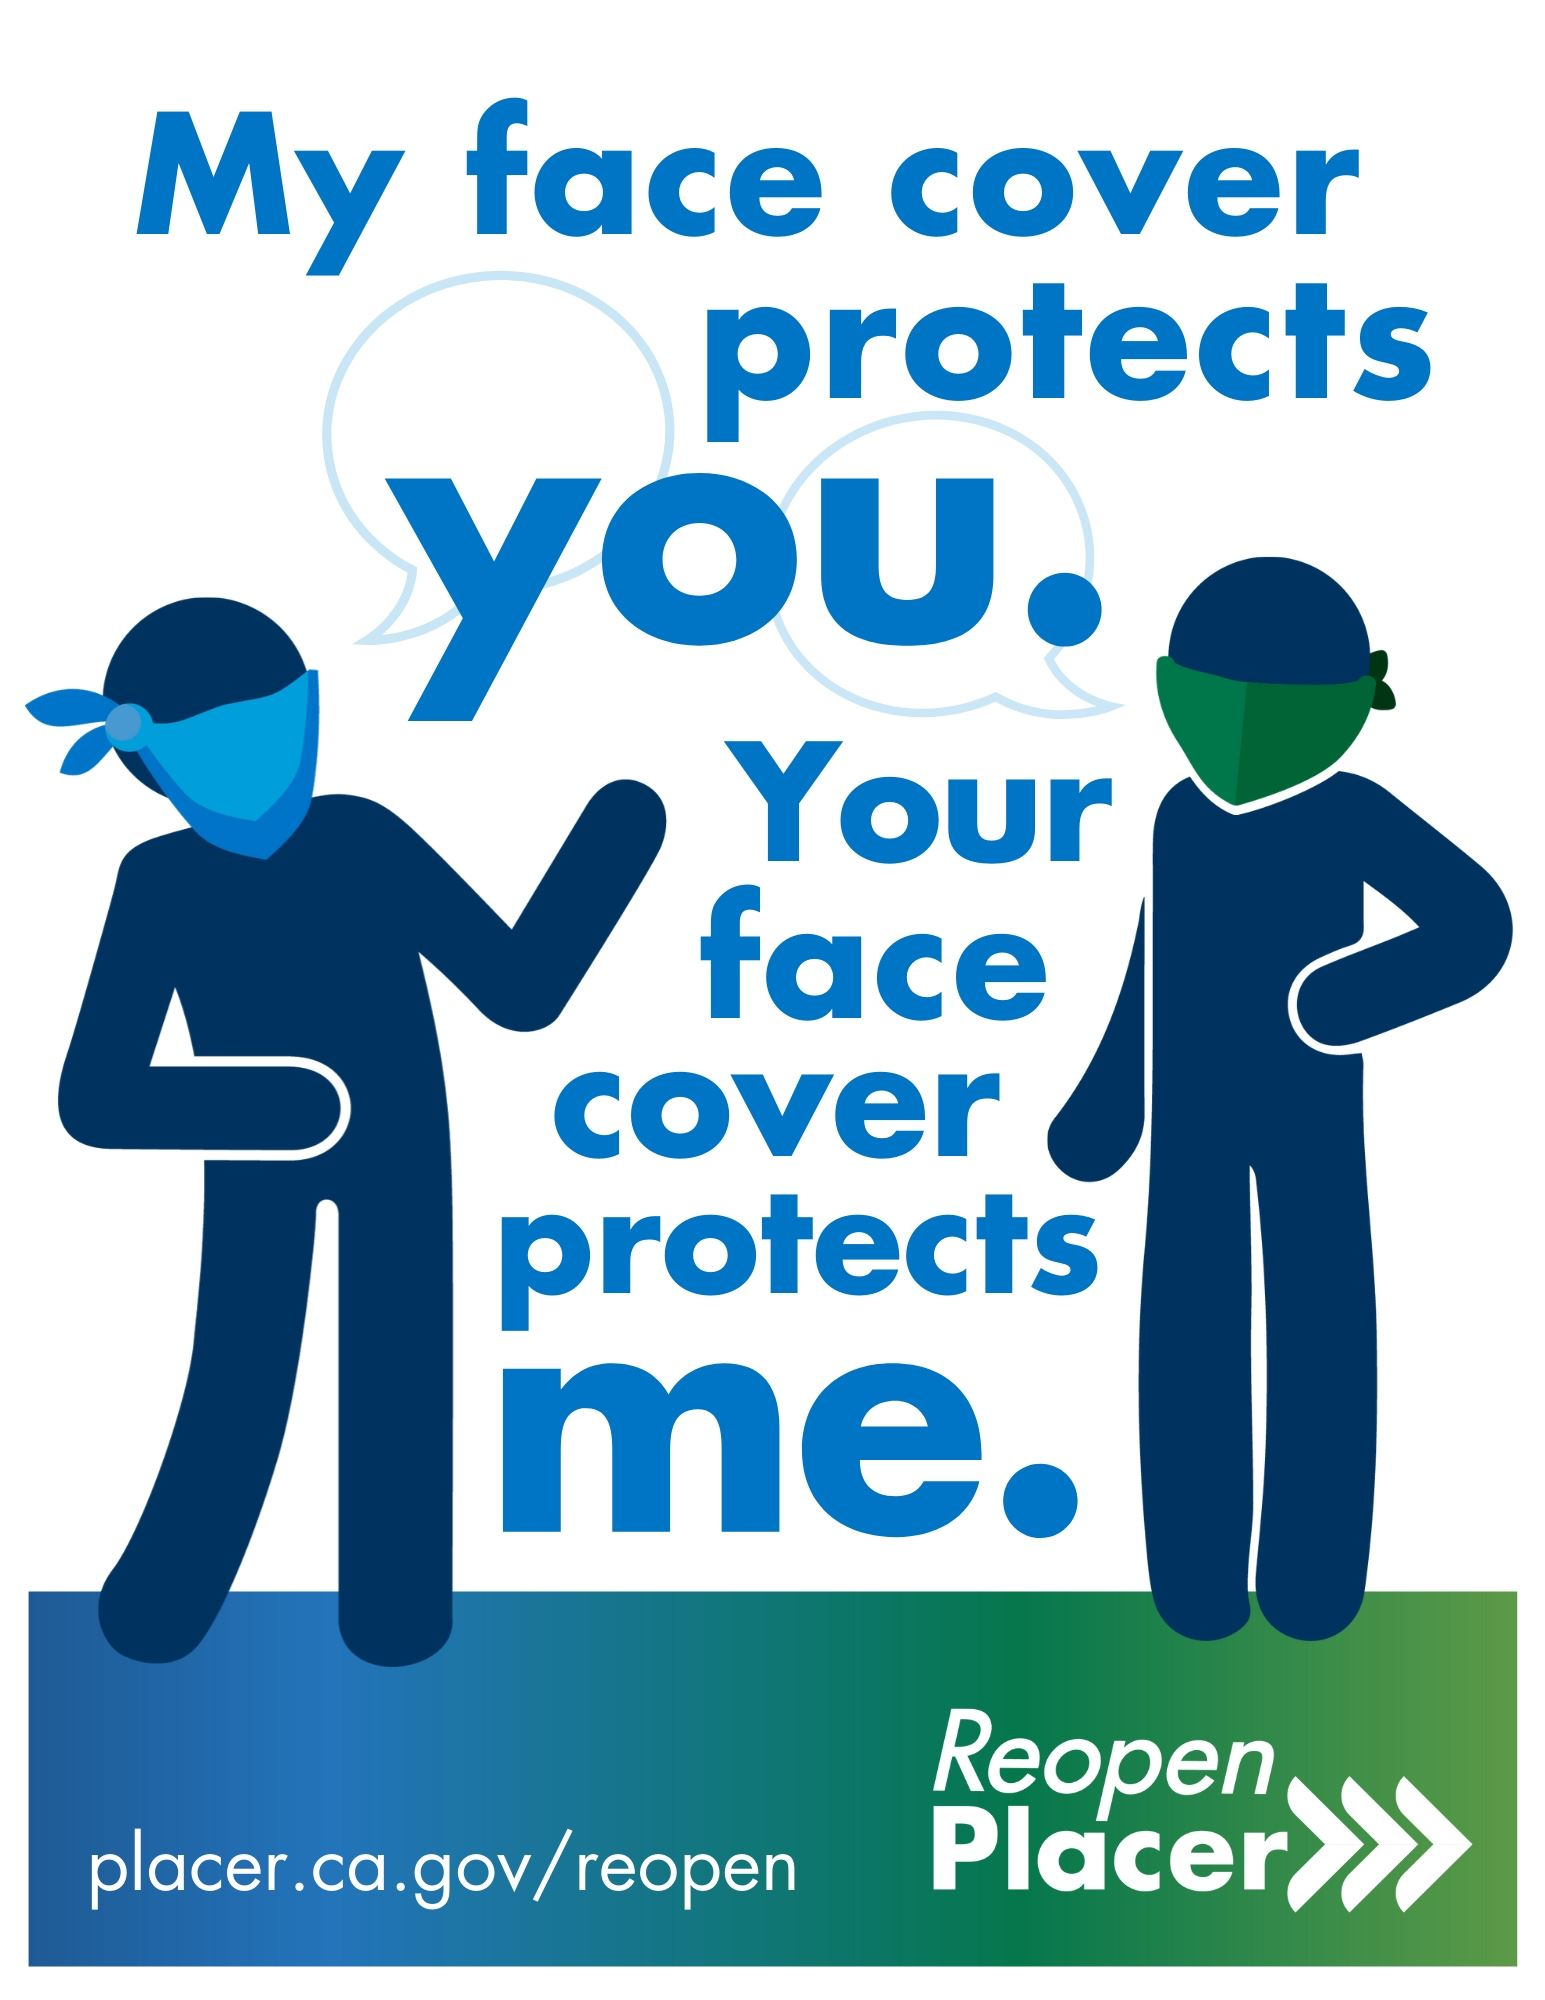 Your face cover protects me poster Opens in new window